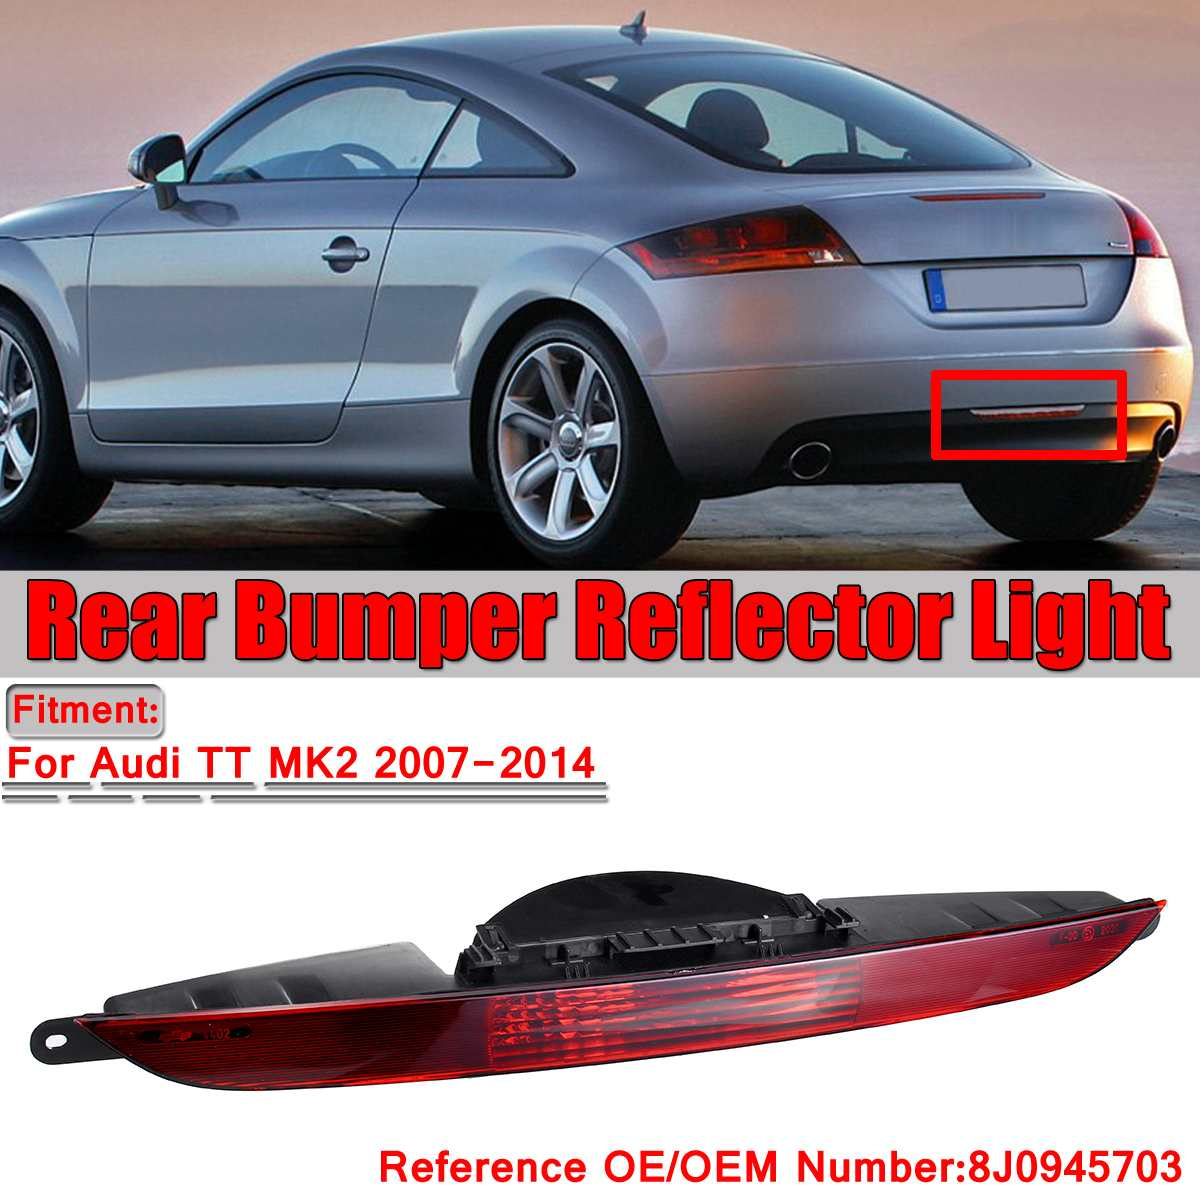 MK2 Car Rear Tail Light Rear Lamps Rear Bumper Center Reflector Fog Light Tail Lamp For Audi TT MK2 2007-2014 8J0945703 No BulbMK2 Car Rear Tail Light Rear Lamps Rear Bumper Center Reflector Fog Light Tail Lamp For Audi TT MK2 2007-2014 8J0945703 No Bulb